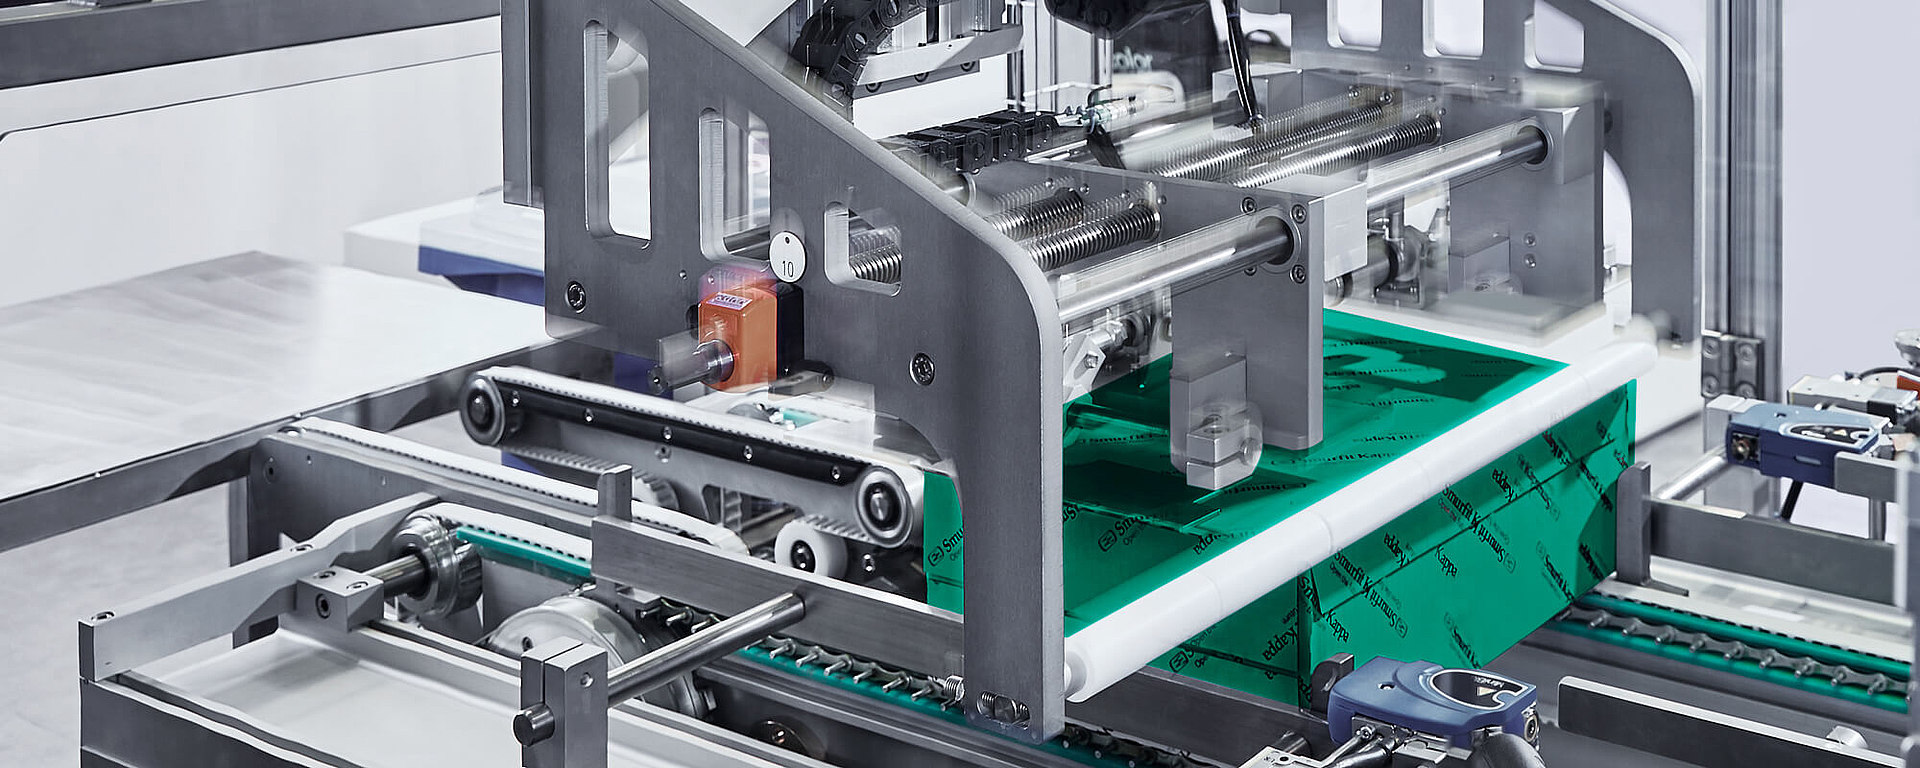 The packaging industry is depicted as an example of gearbox applications